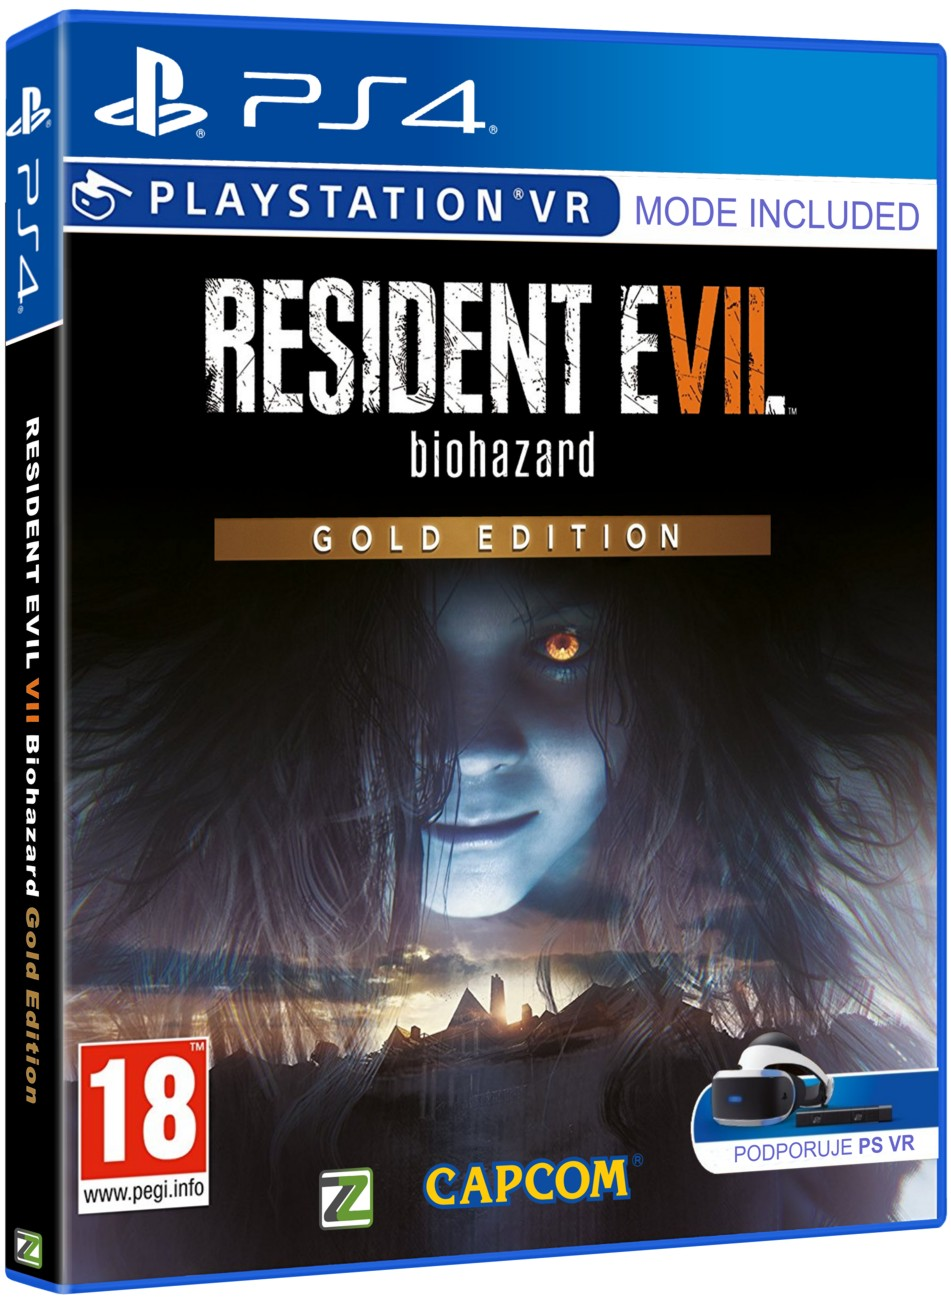 Resident Evil 7: Biohazard (Gold Edition) - PS4